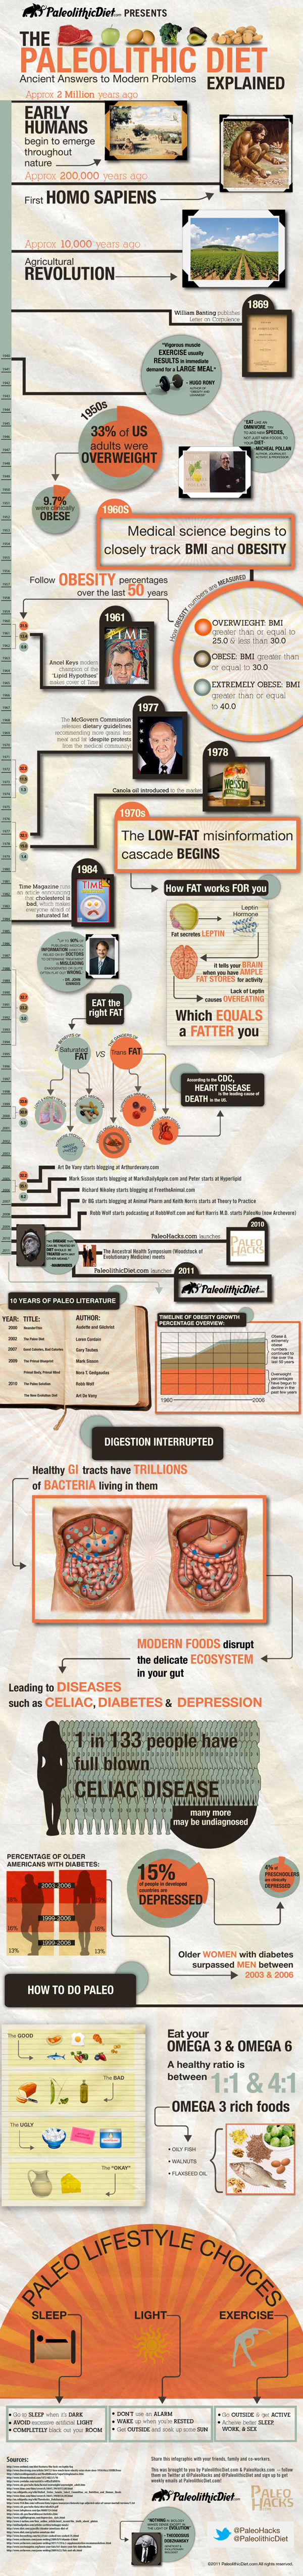 The Paleolithic Diet: Eat Like a Caveman, Live Like a King  #inforgraphic